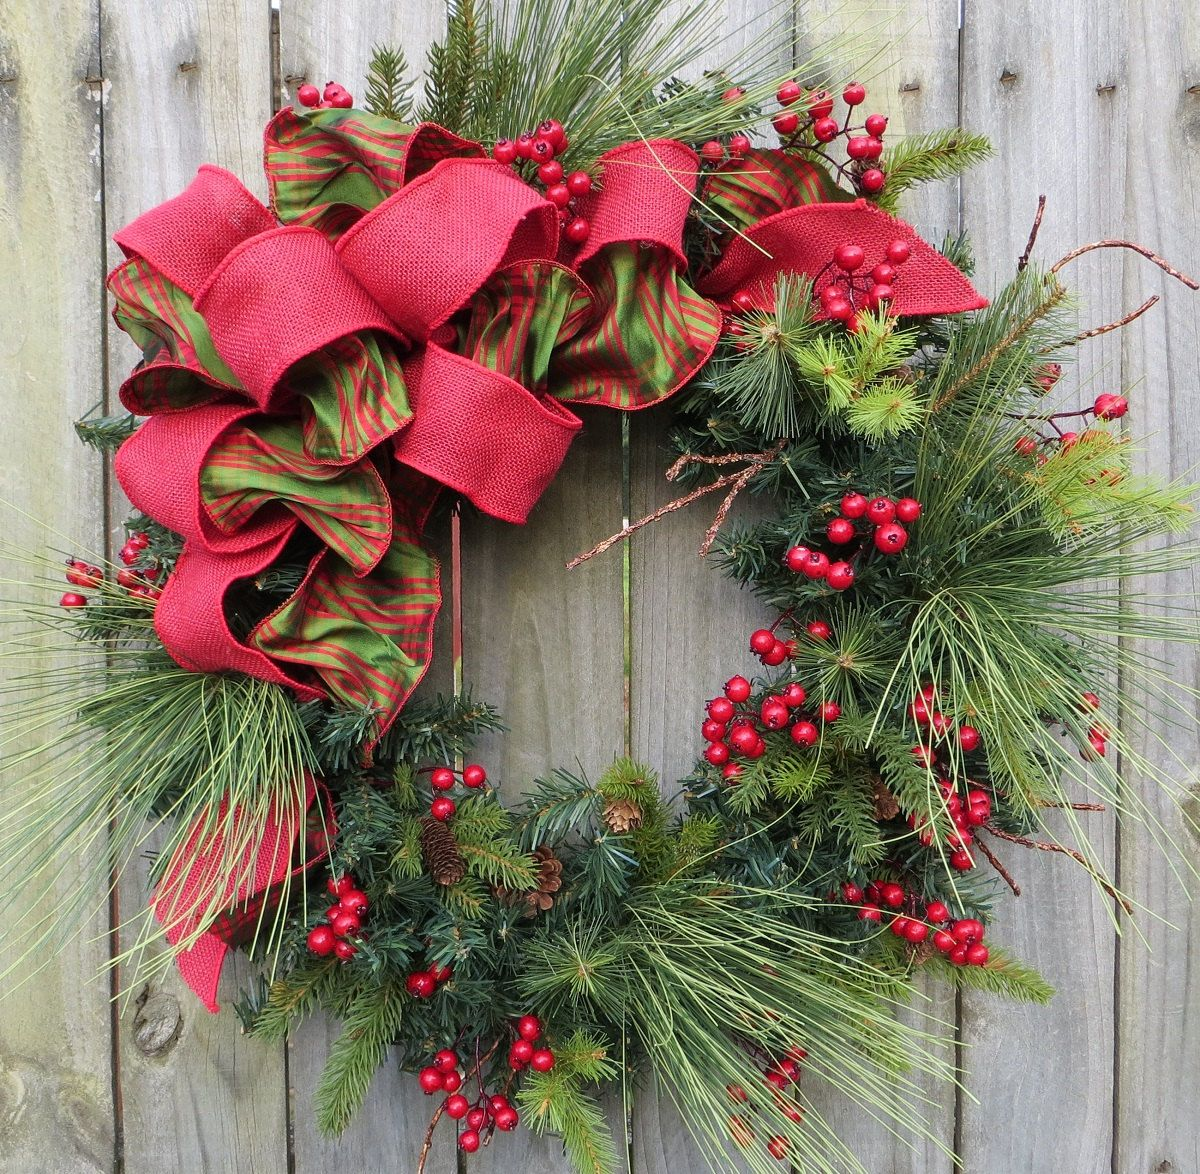 Easy Ways To Decorate Your Porch For Christmas Wreaths - Ideas for decorating christmas wreaths